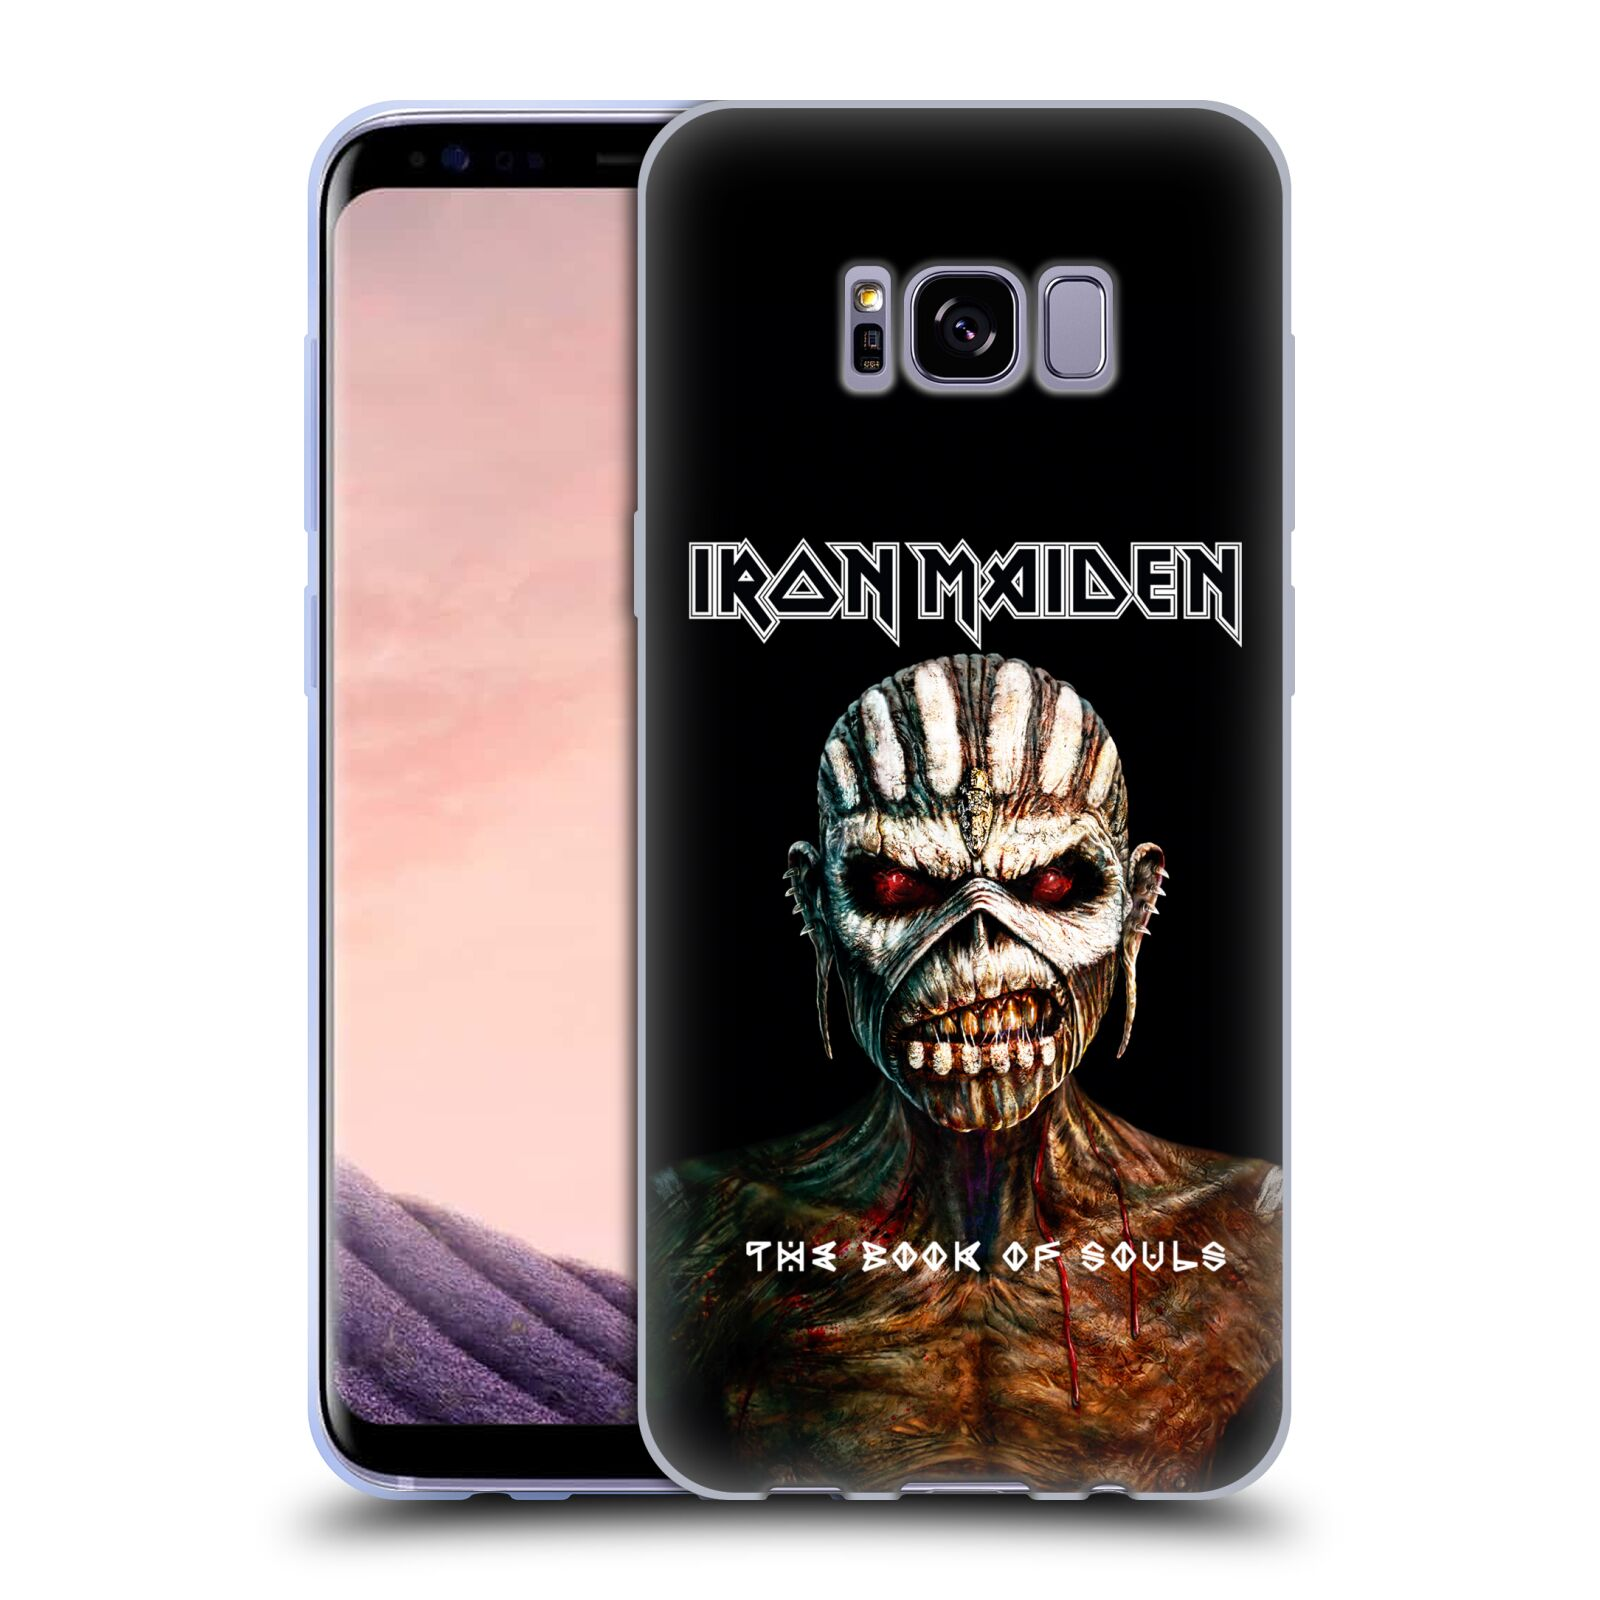 HEAD CASE silikonový obal na mobil Samsung Galaxy S8 PLUS Heavymetalová skupina Iron Maiden The Book Of Souls